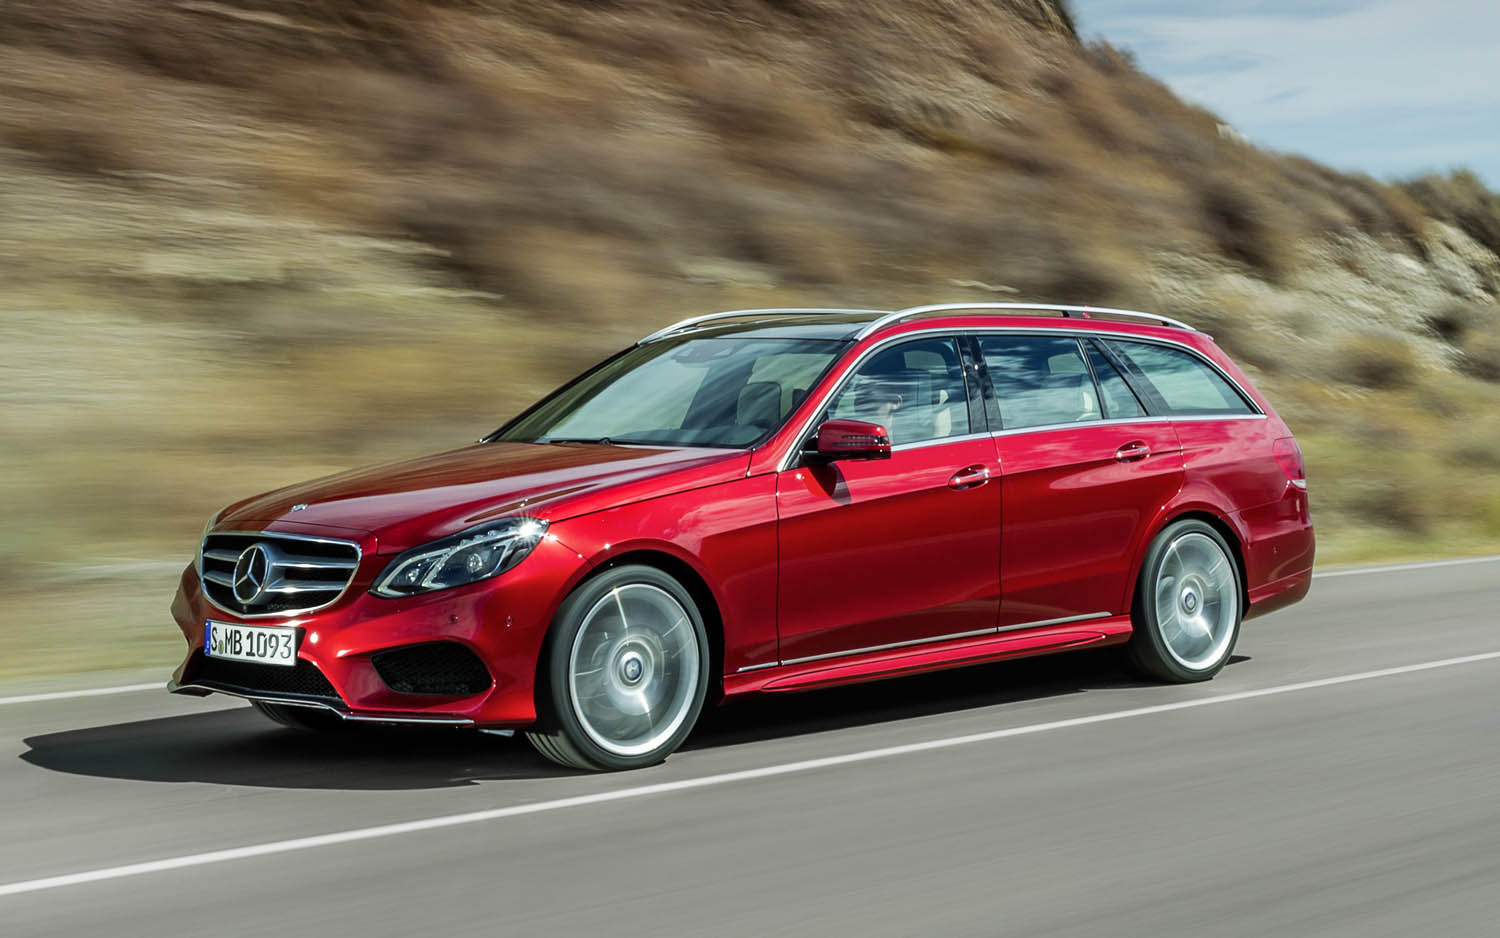 Mercedes benz usa selling more luxury cars than ever in history 2014 mercedes benz e class wagon altavistaventures Image collections